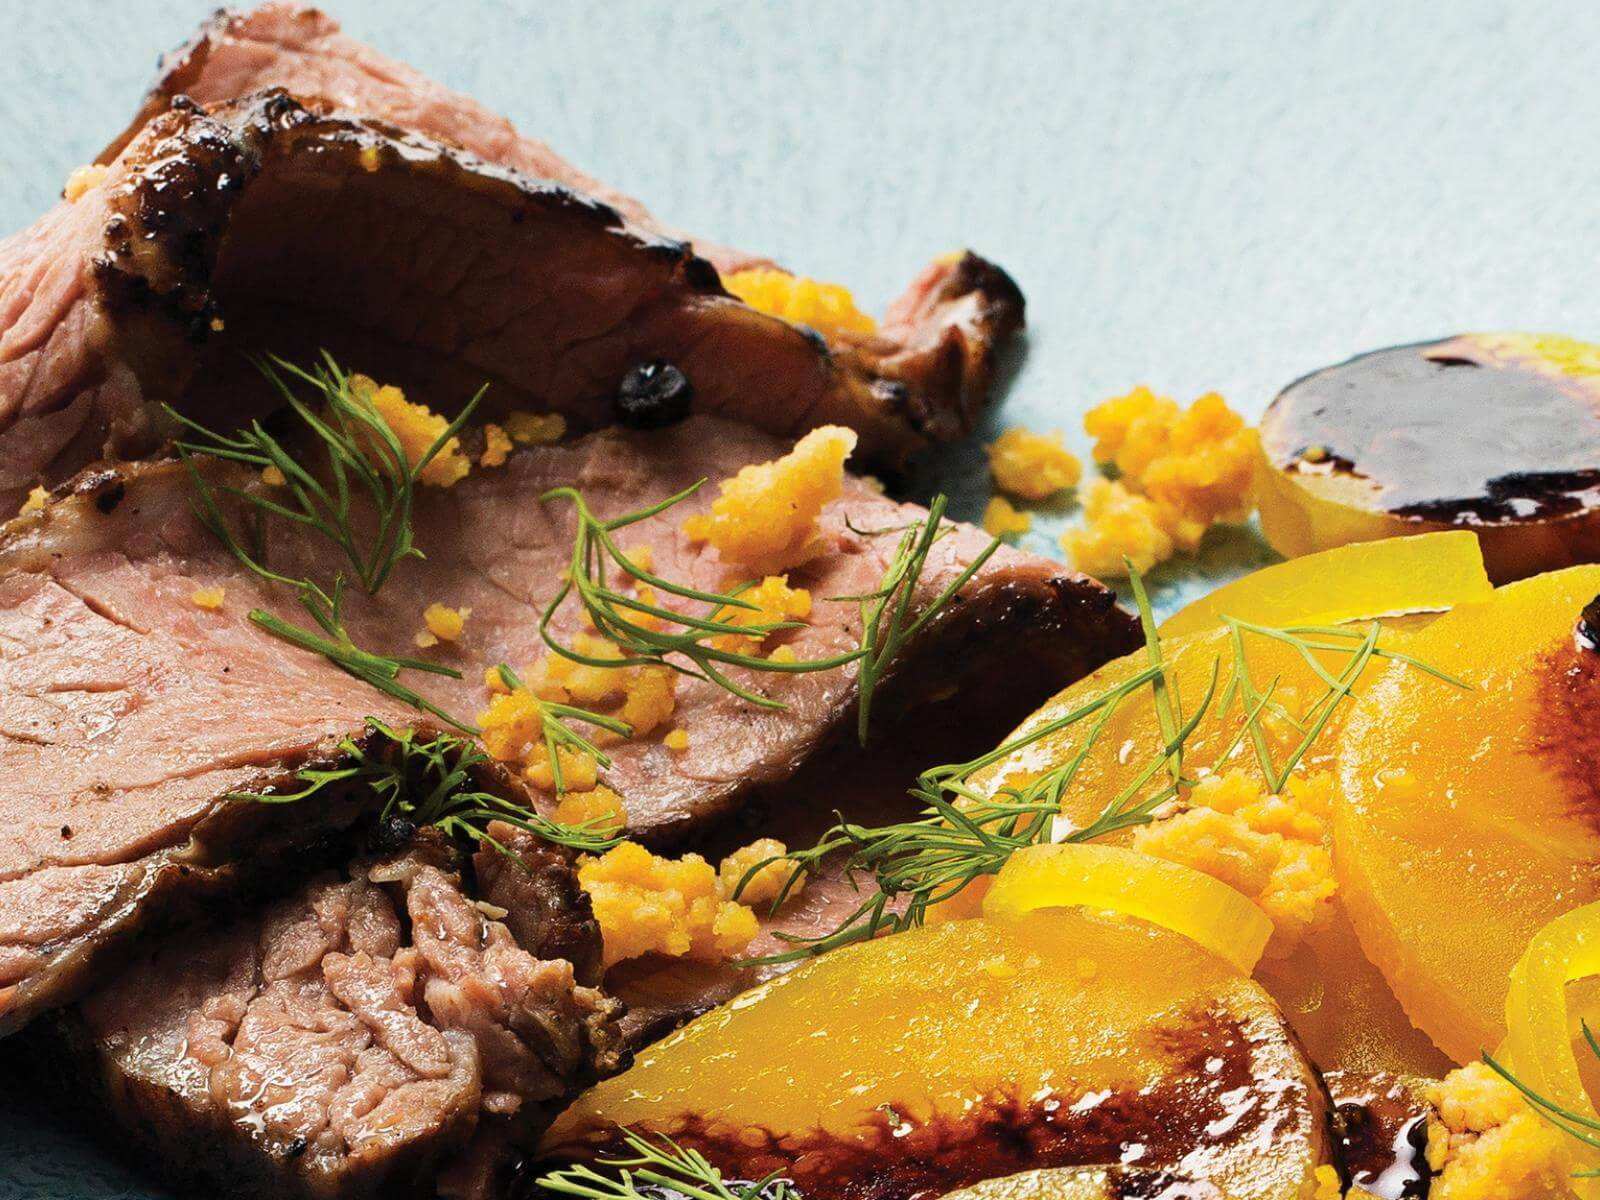 Sous Vide Smoked Brisket with Cornbread Crumble and Golden Beet Salad